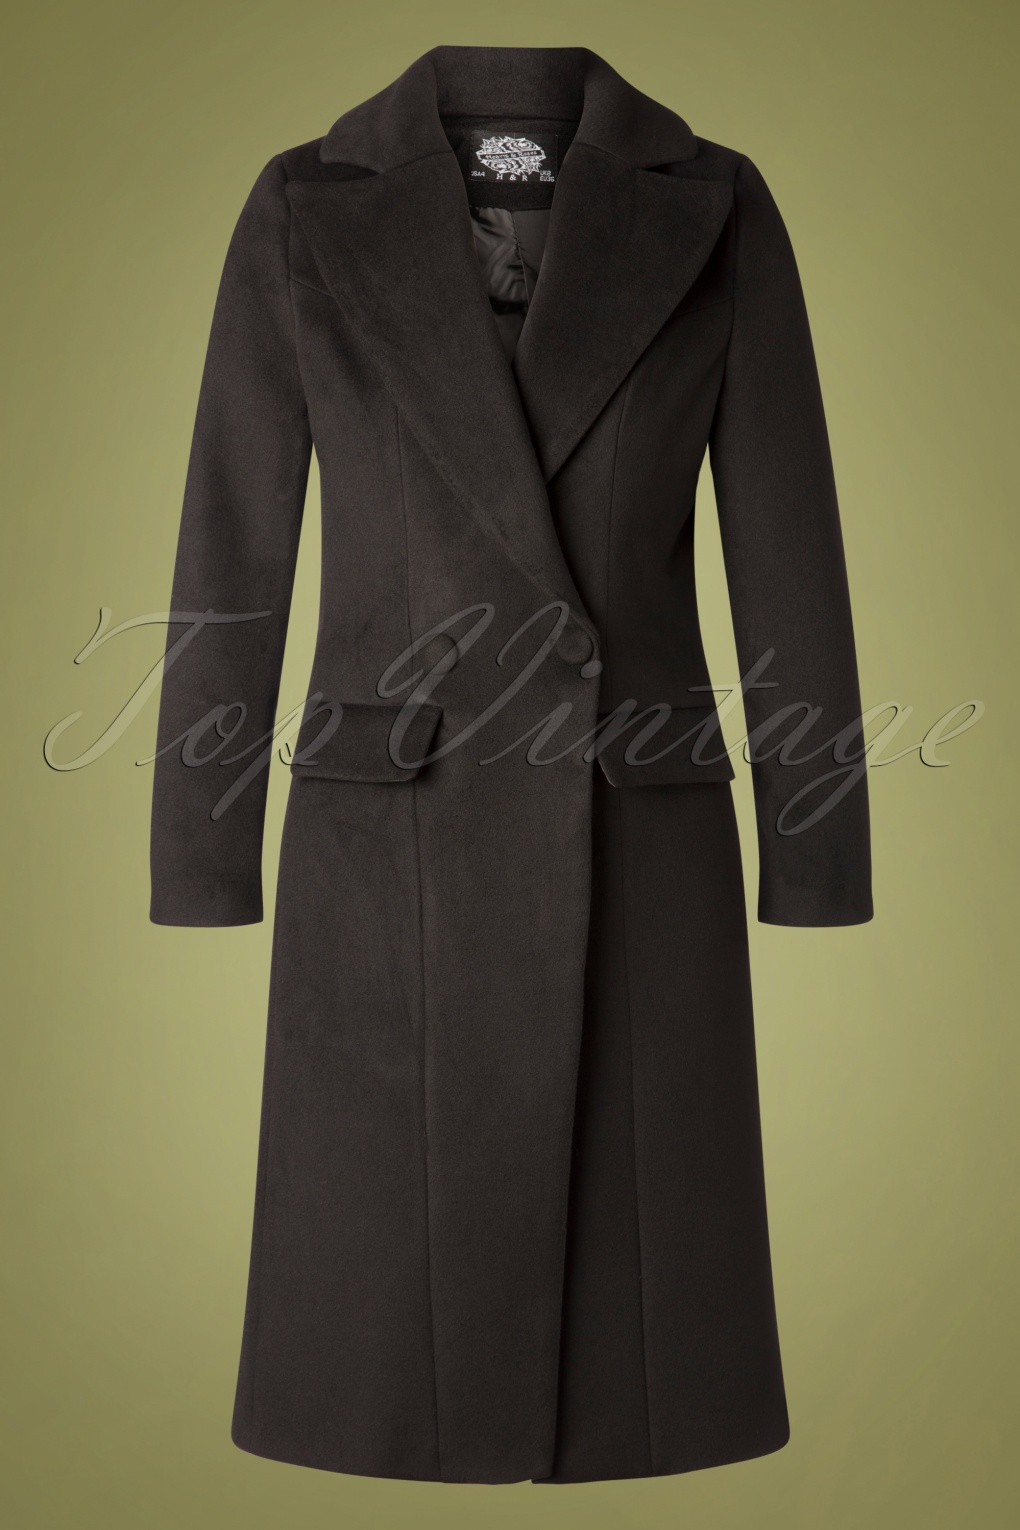 1940s Coats & Jackets Fashion History 60s Eloise Vintage Coat in Black £94.73 AT vintagedancer.com